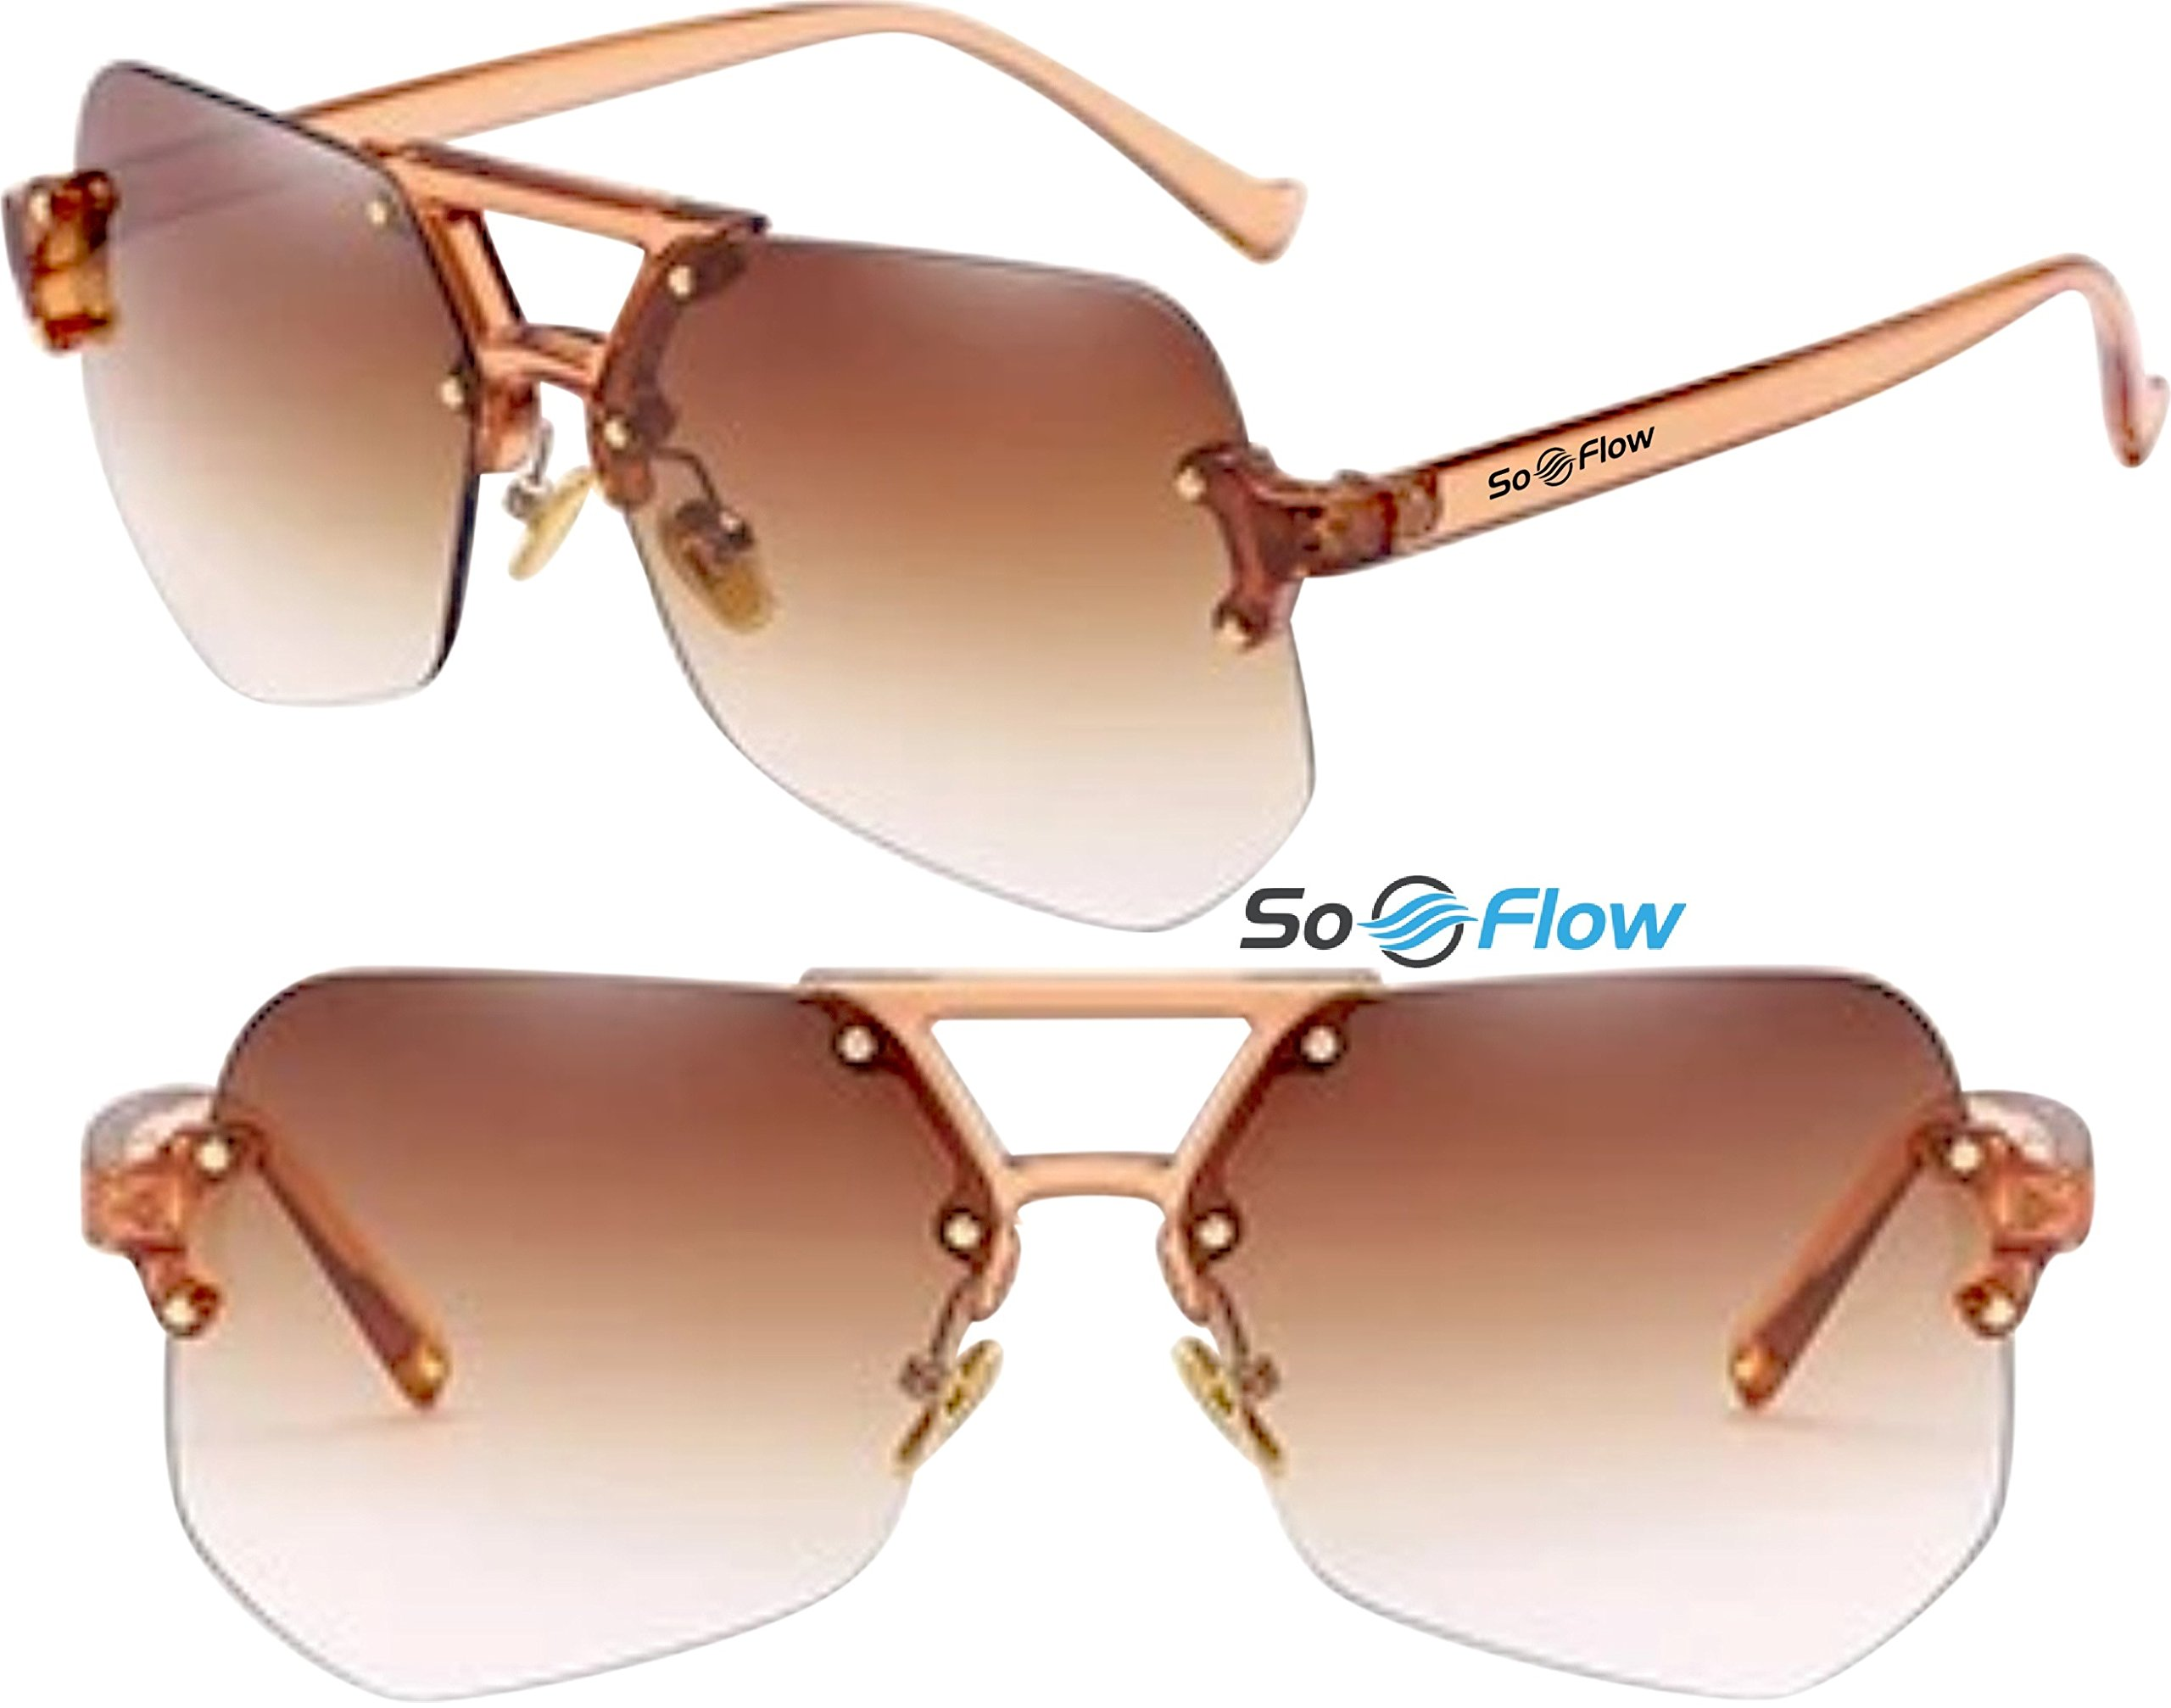 Brown Polarized Oversized Rimless Sunglasses For Women Men - Polygon - Prime UV400 Protection - Lightweight - Brown Lens Polarized Sunglasses - Large Rimless Oversized Sunglasses